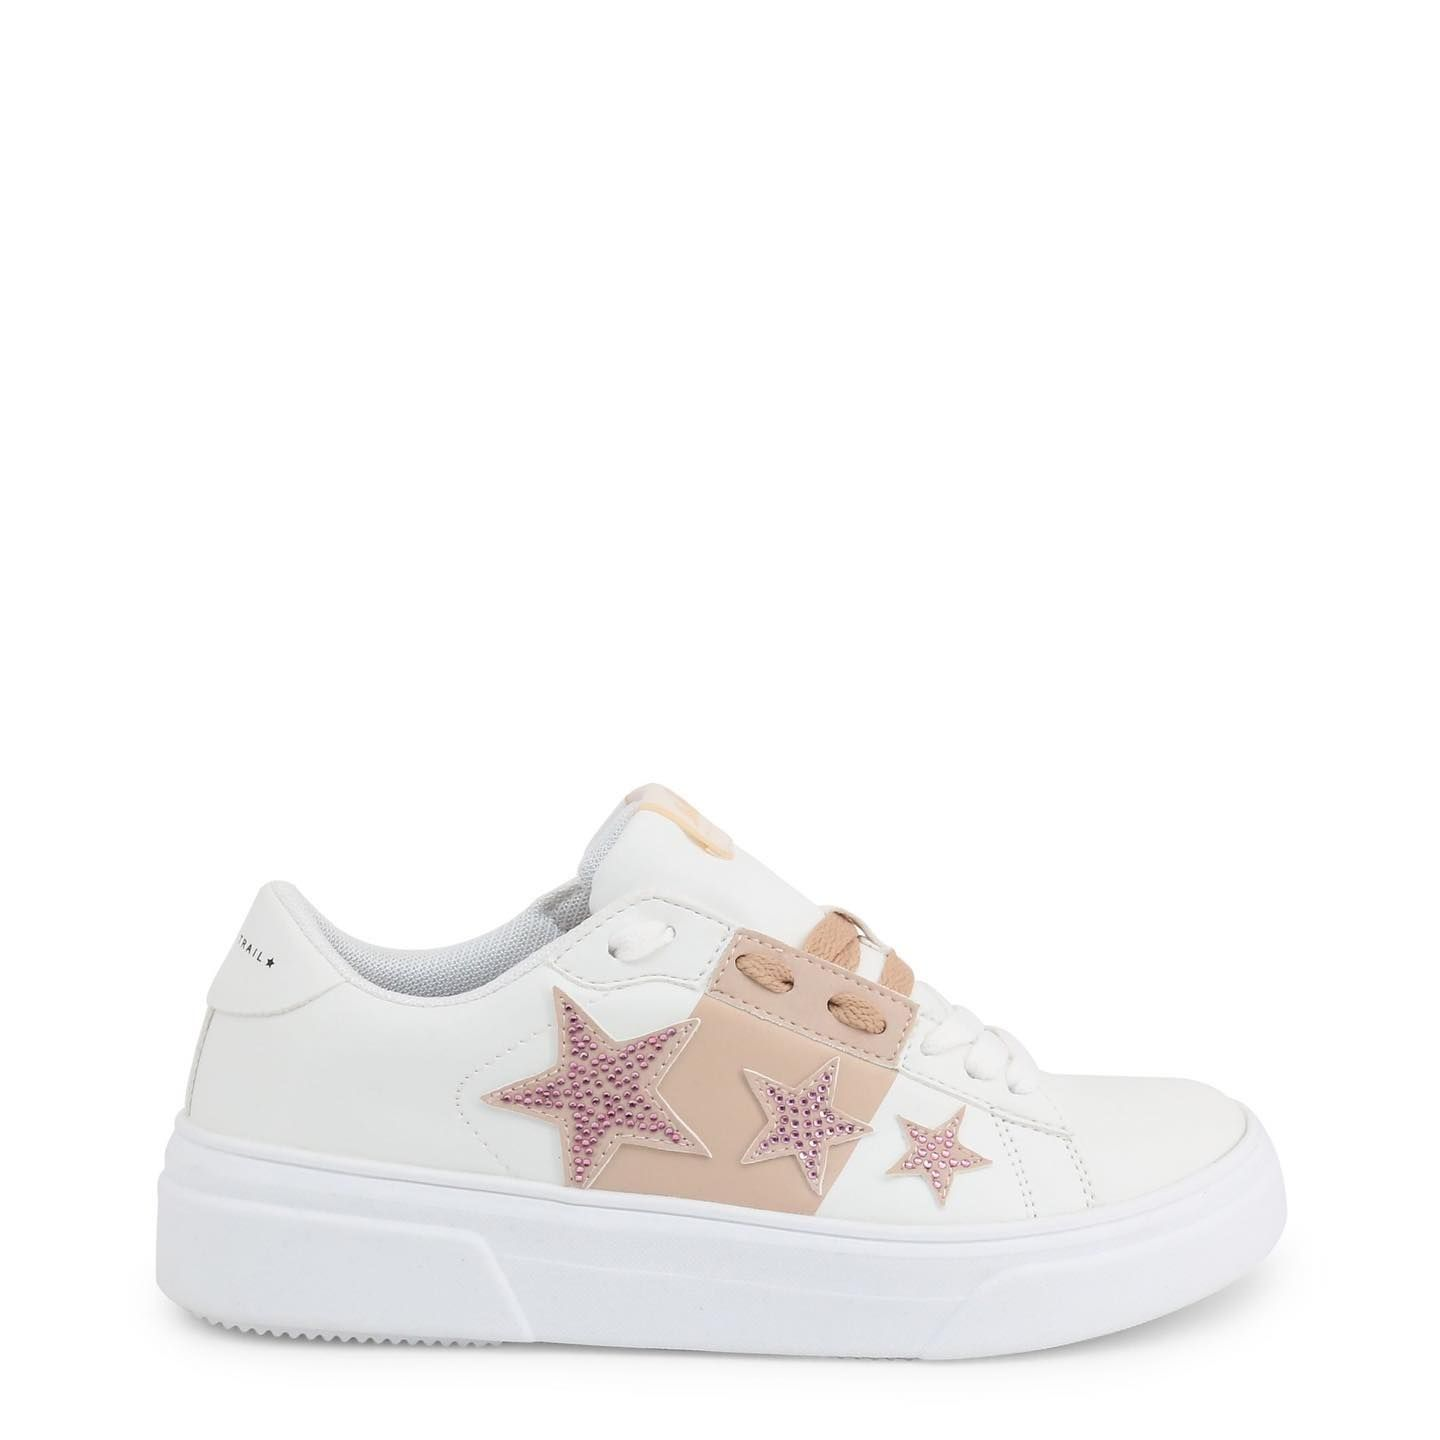 Dm For 20 Discount Code Authentic Designer Fashion Products On Best Ever Prices Free Worldwide De Kids Sports Shoes Womens Sneakers Dress With Sneakers